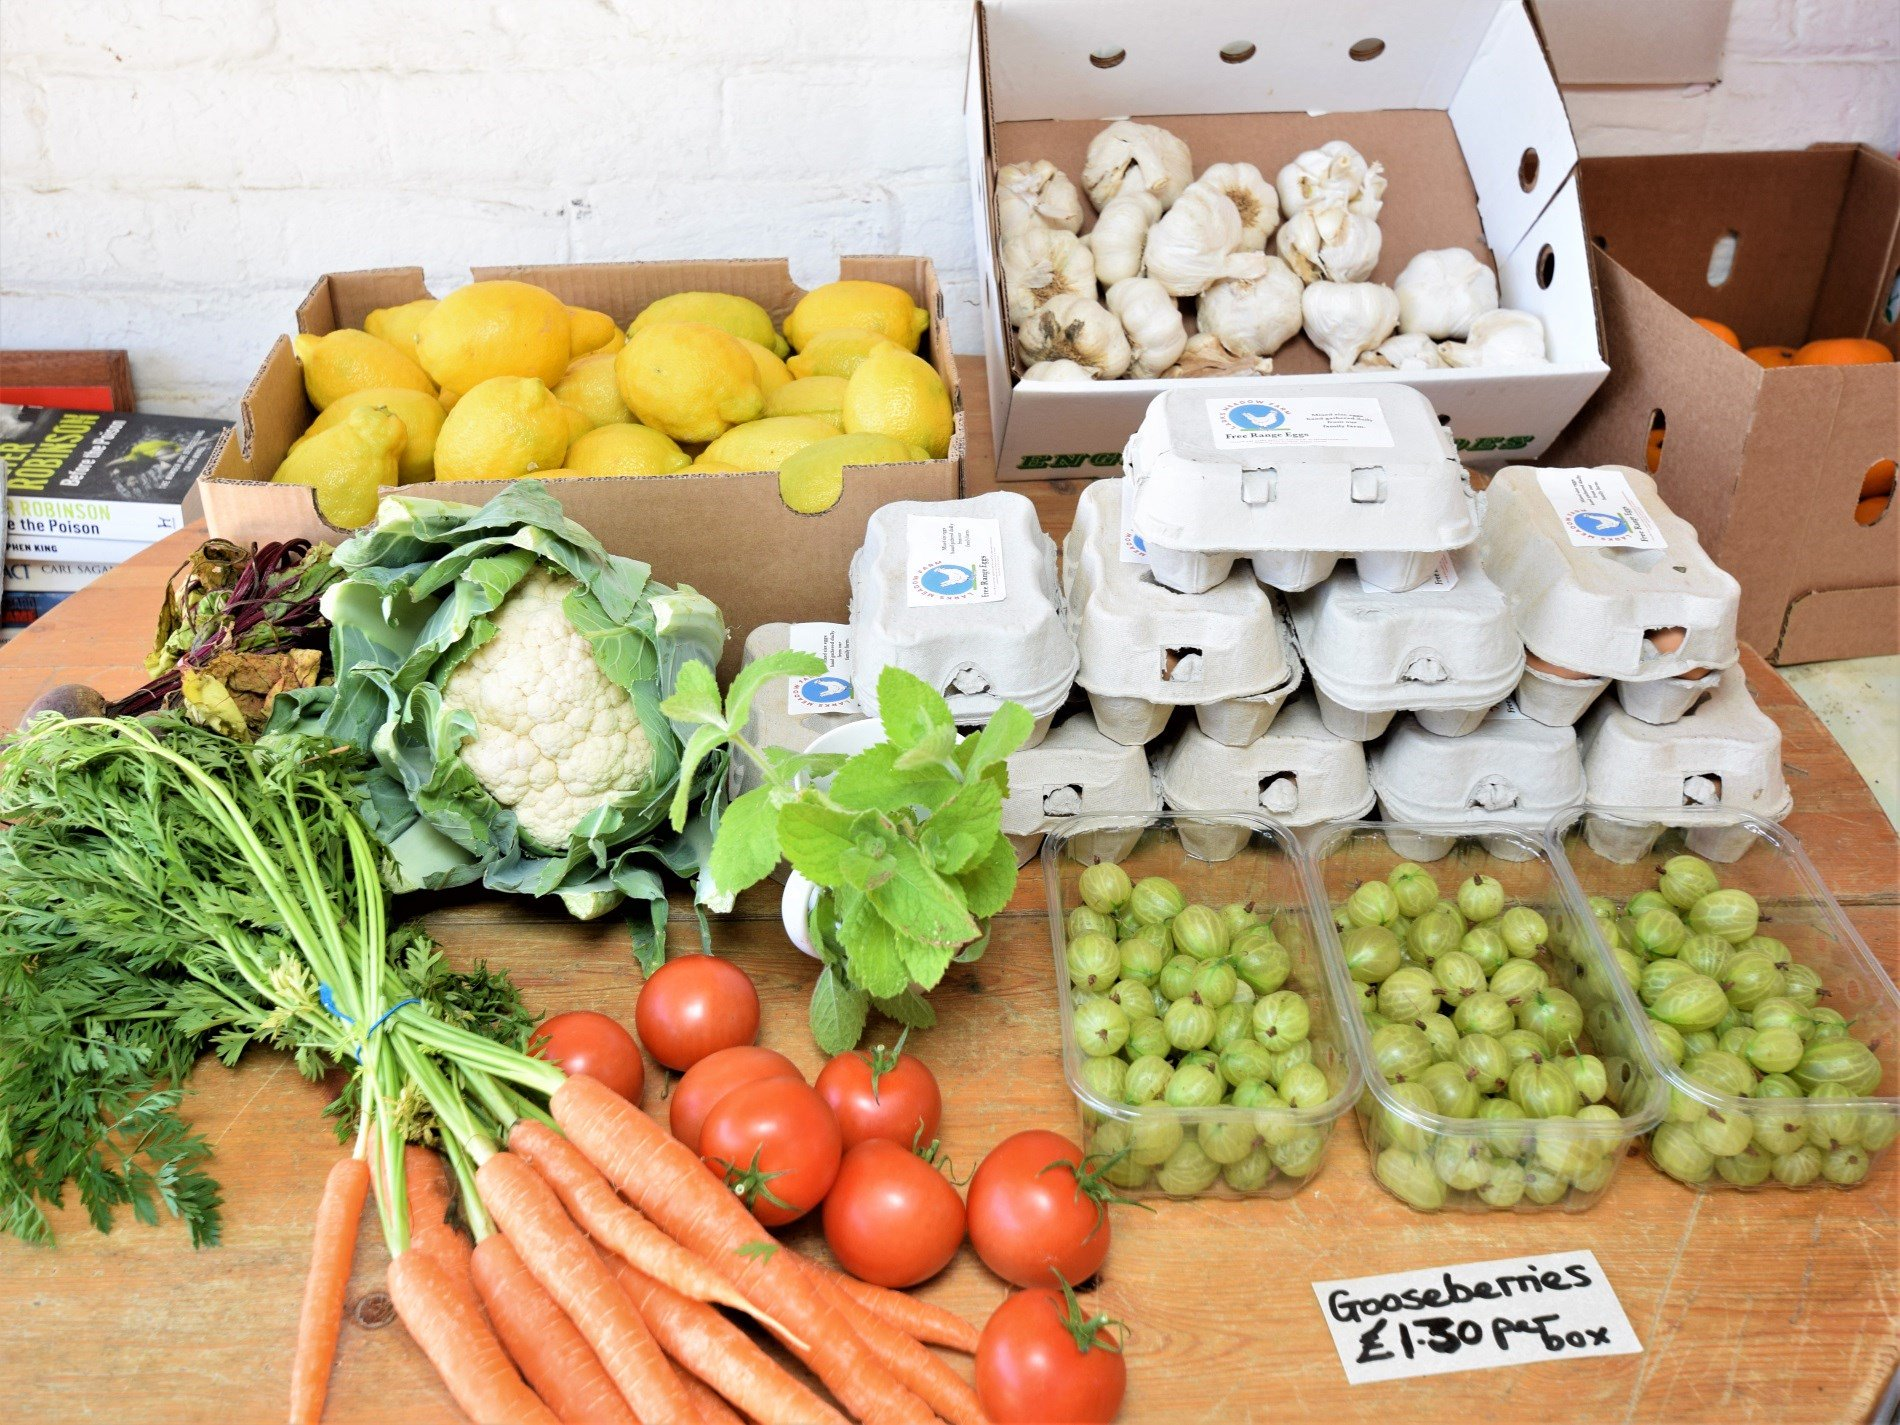 Enjoy deciding what to cook from the farm shop